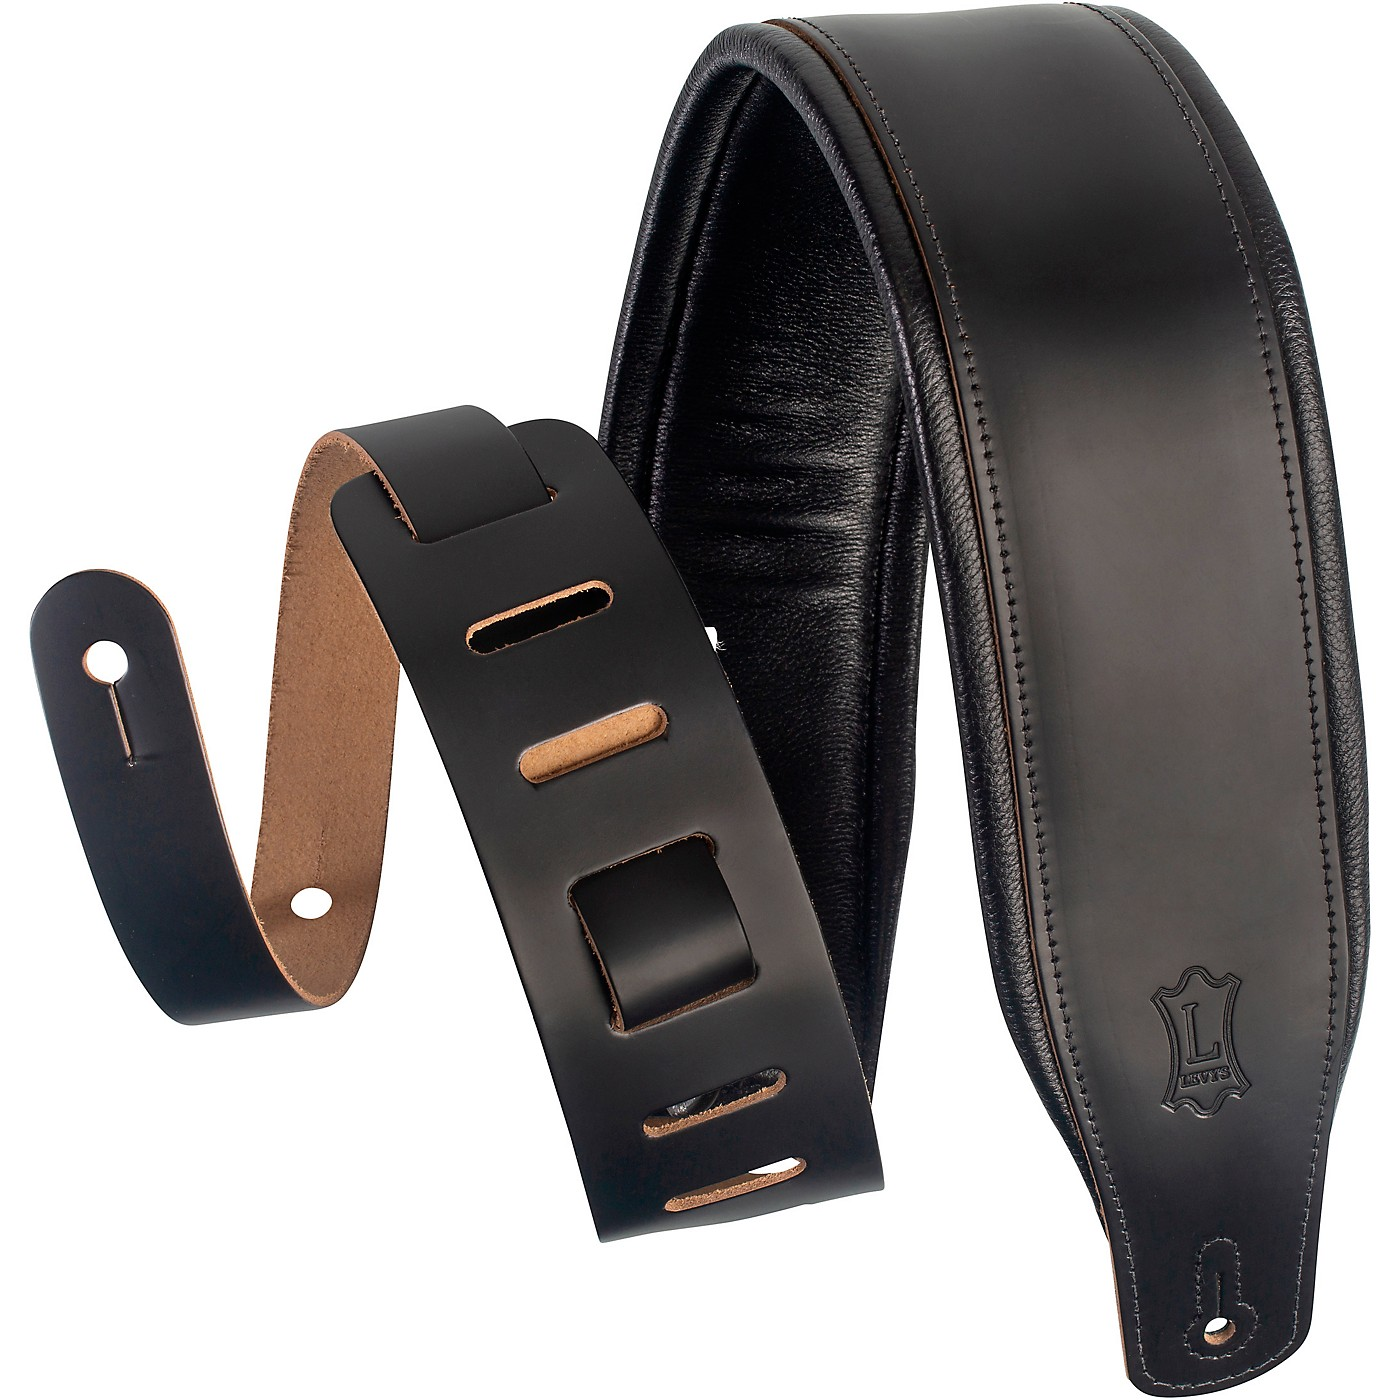 Levy's M26PD 3 inch Wide Top Grain Leather Guitar Straps thumbnail